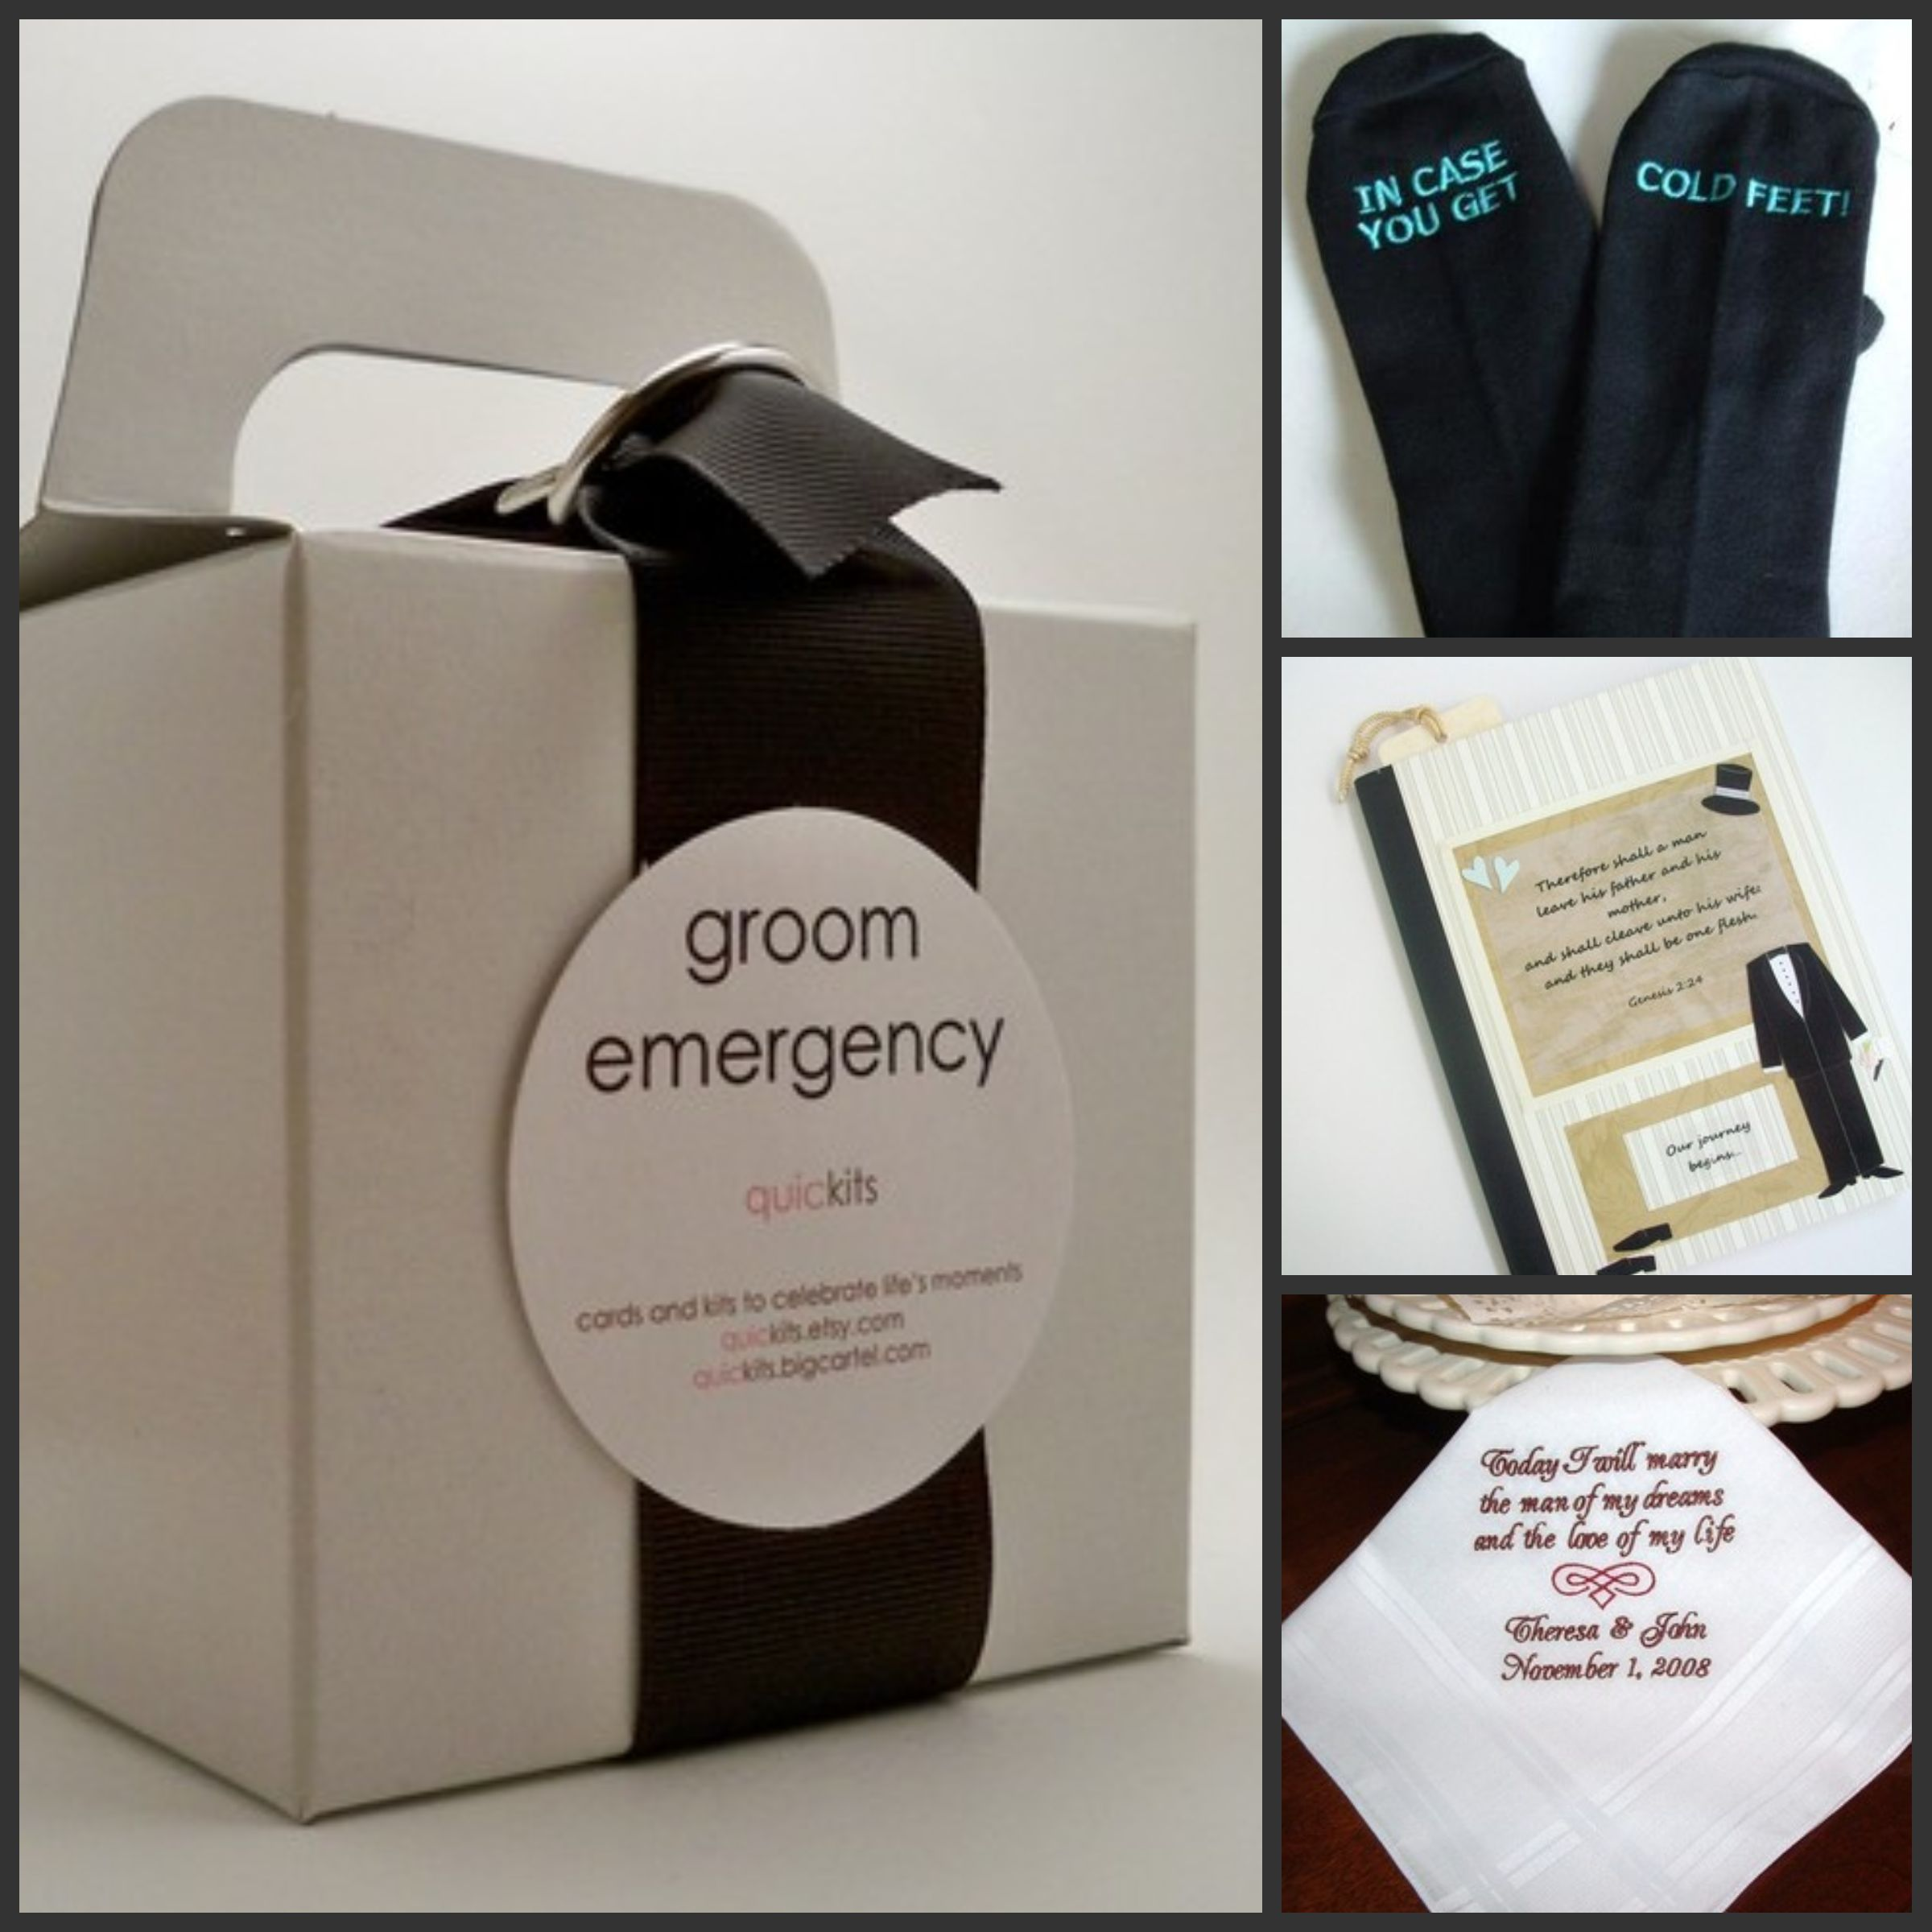 Groom Wedding Gift For Bride Ideas : personal gifts for your groom clockwise from left groom emergency kit ...